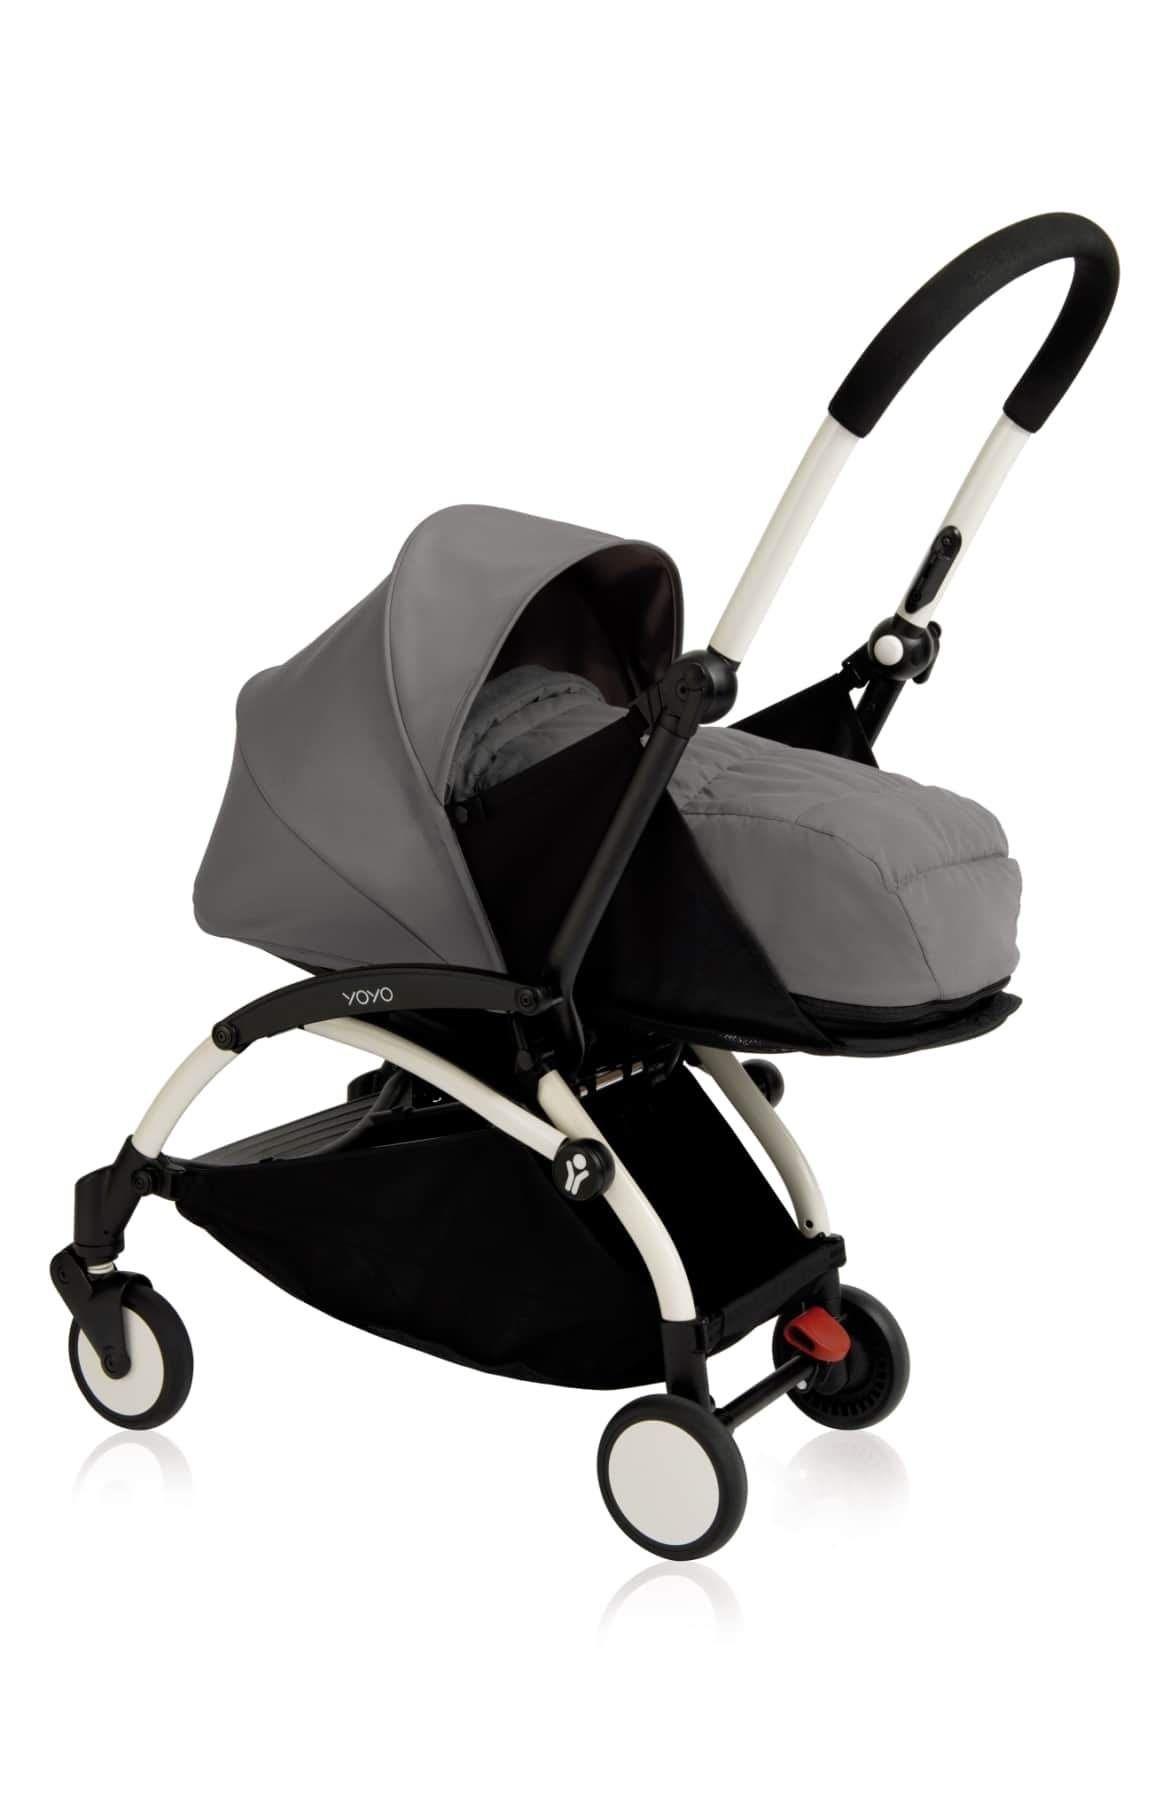 BABYZEN YOYO² Complete Stroller with Newborn Color Pack